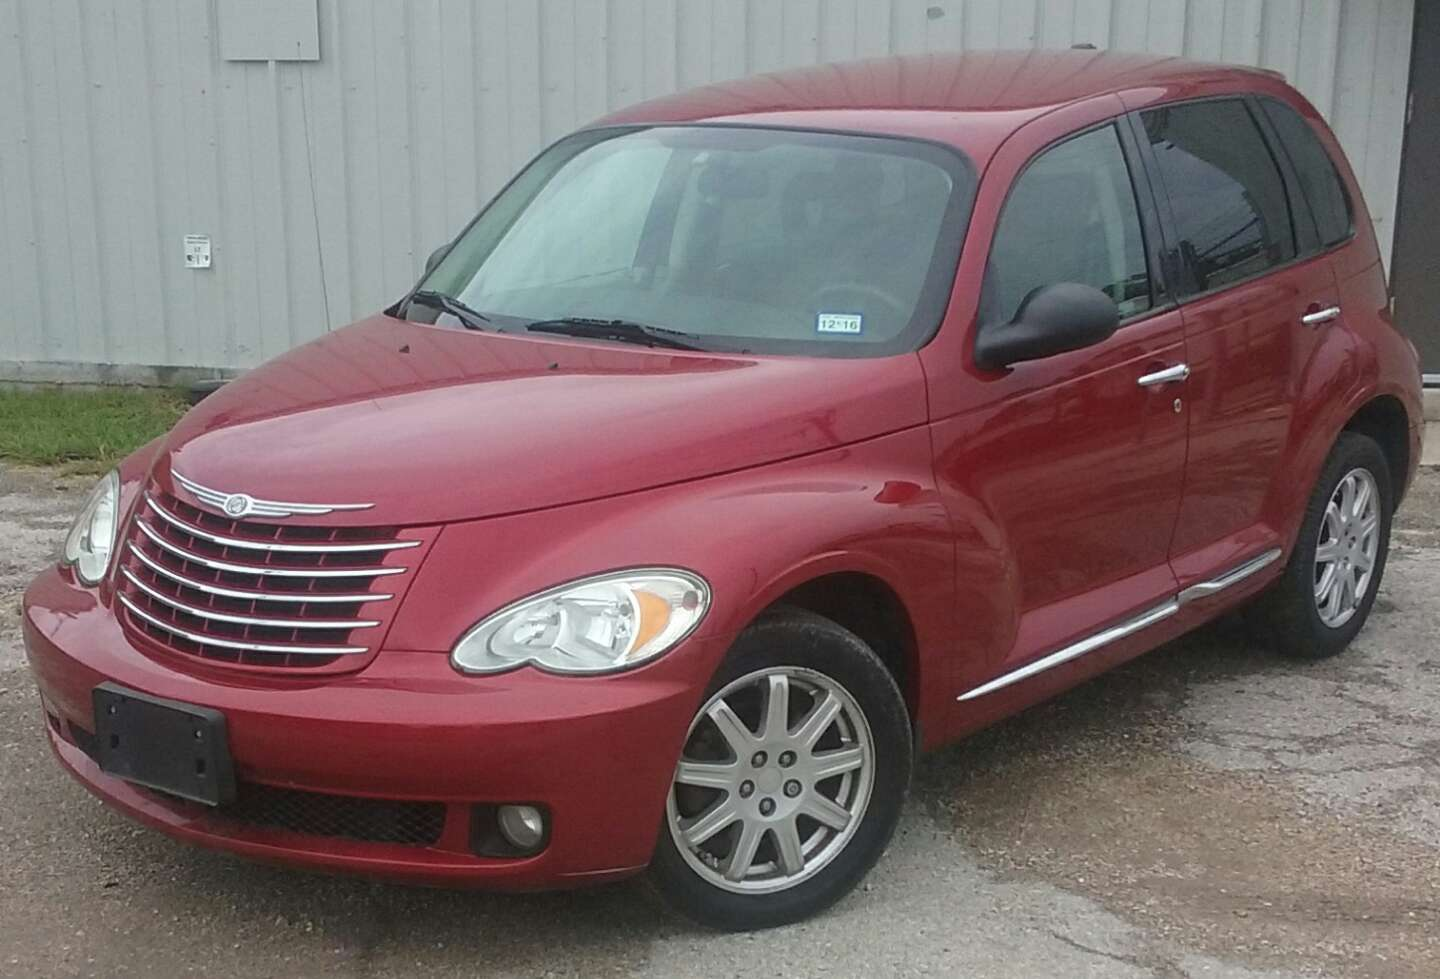 2010 chrysler pt cruiser classic for sale in houston tx 5miles buy and sell. Black Bedroom Furniture Sets. Home Design Ideas